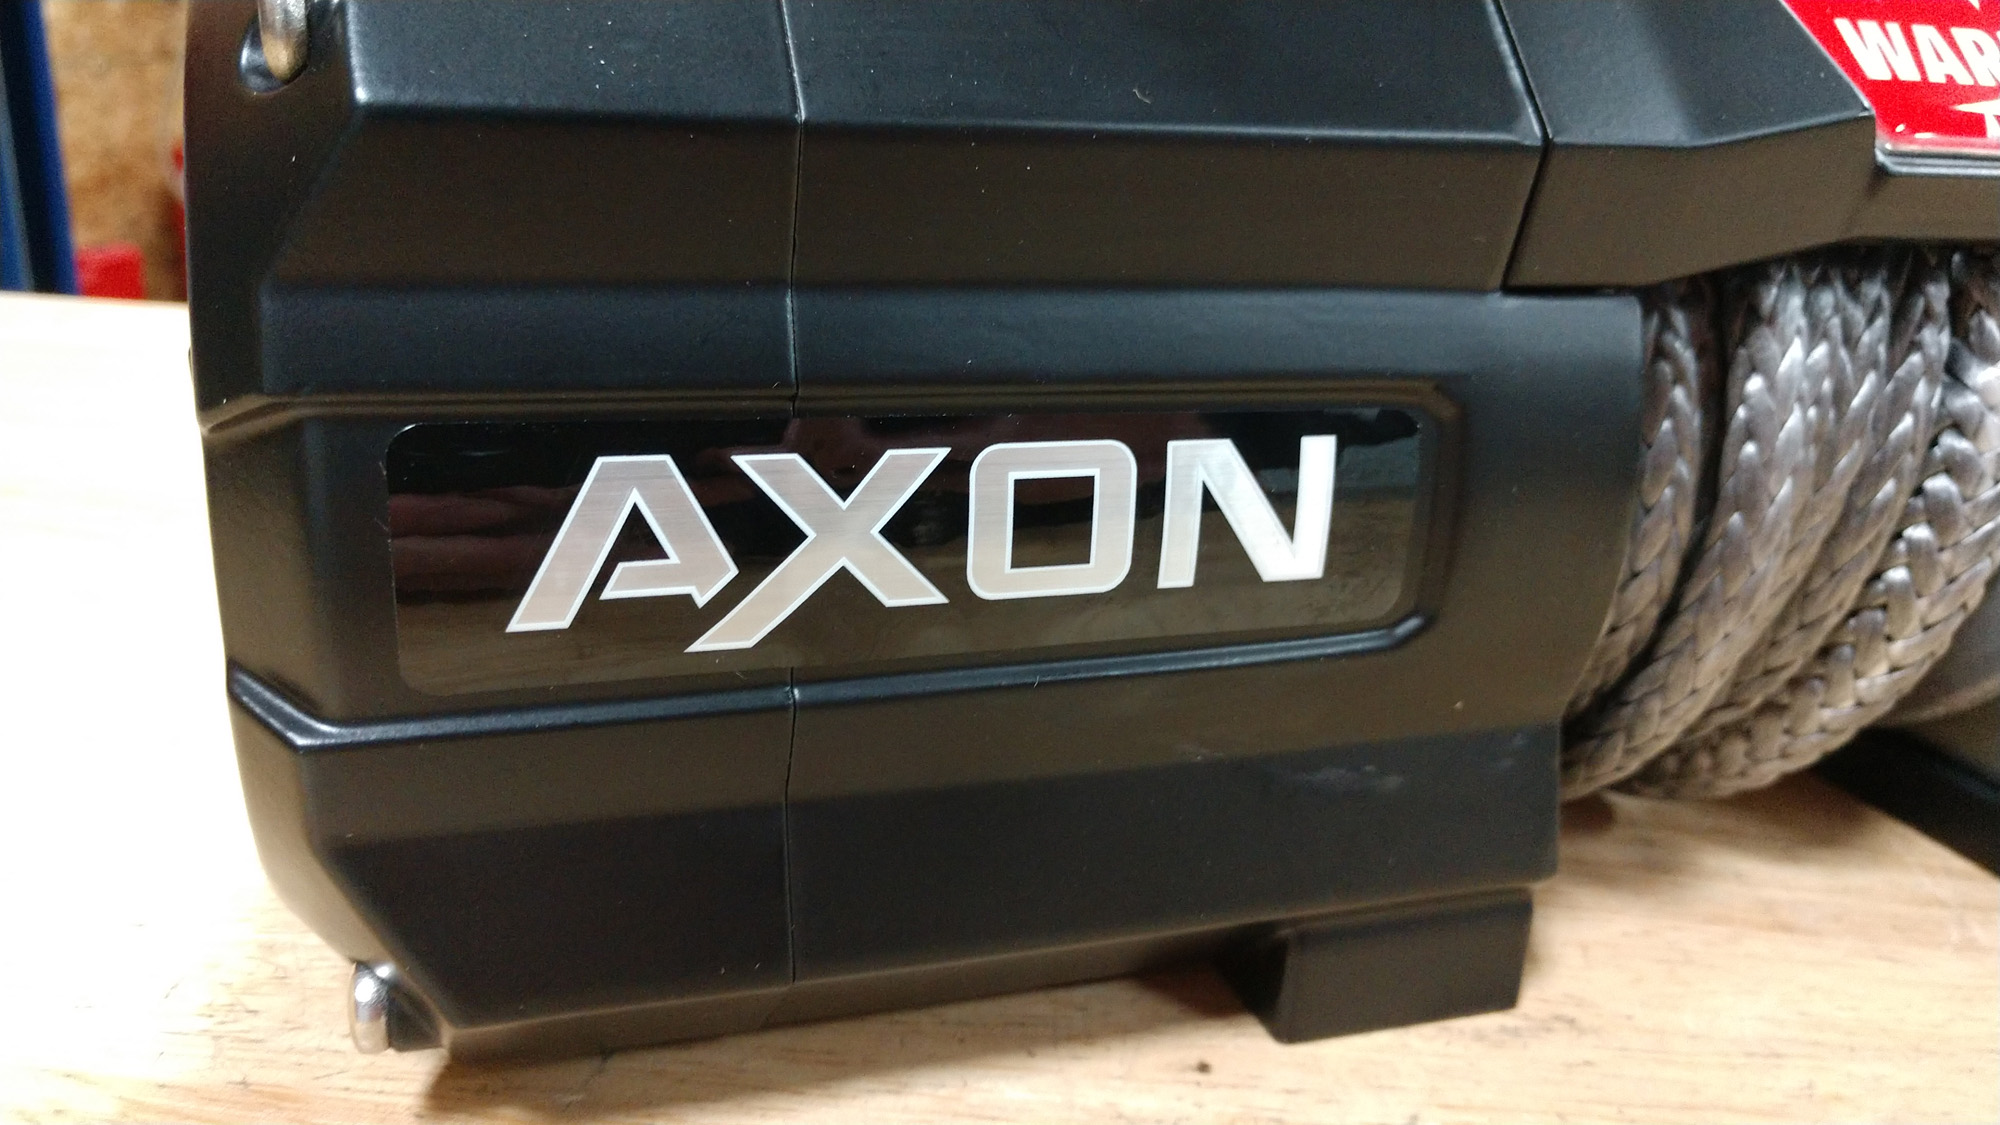 Warn Axon – The Absolute Best Winch for Your SxS UTV Or ATV